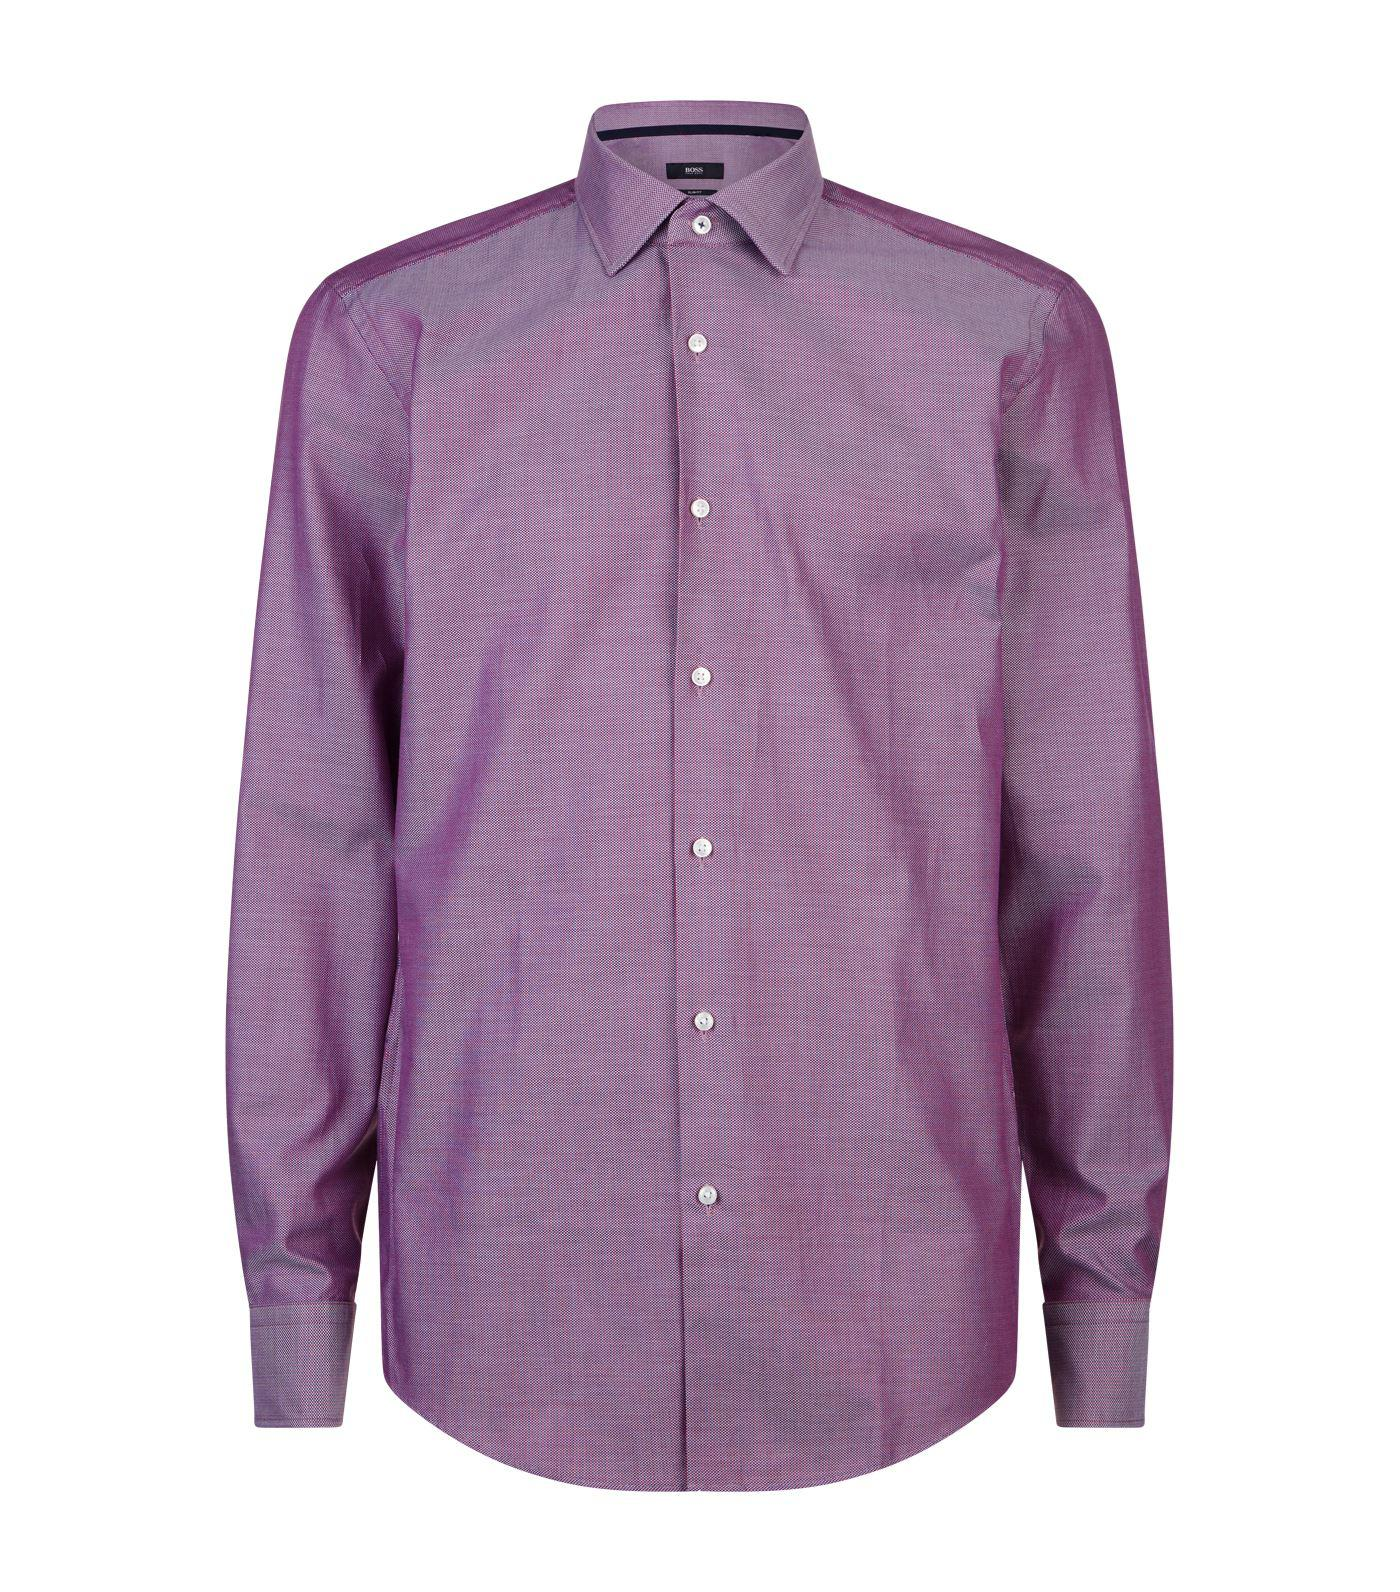 d8ad65dd5 BOSS Micro Birdseye Print Shirt in Purple for Men - Lyst